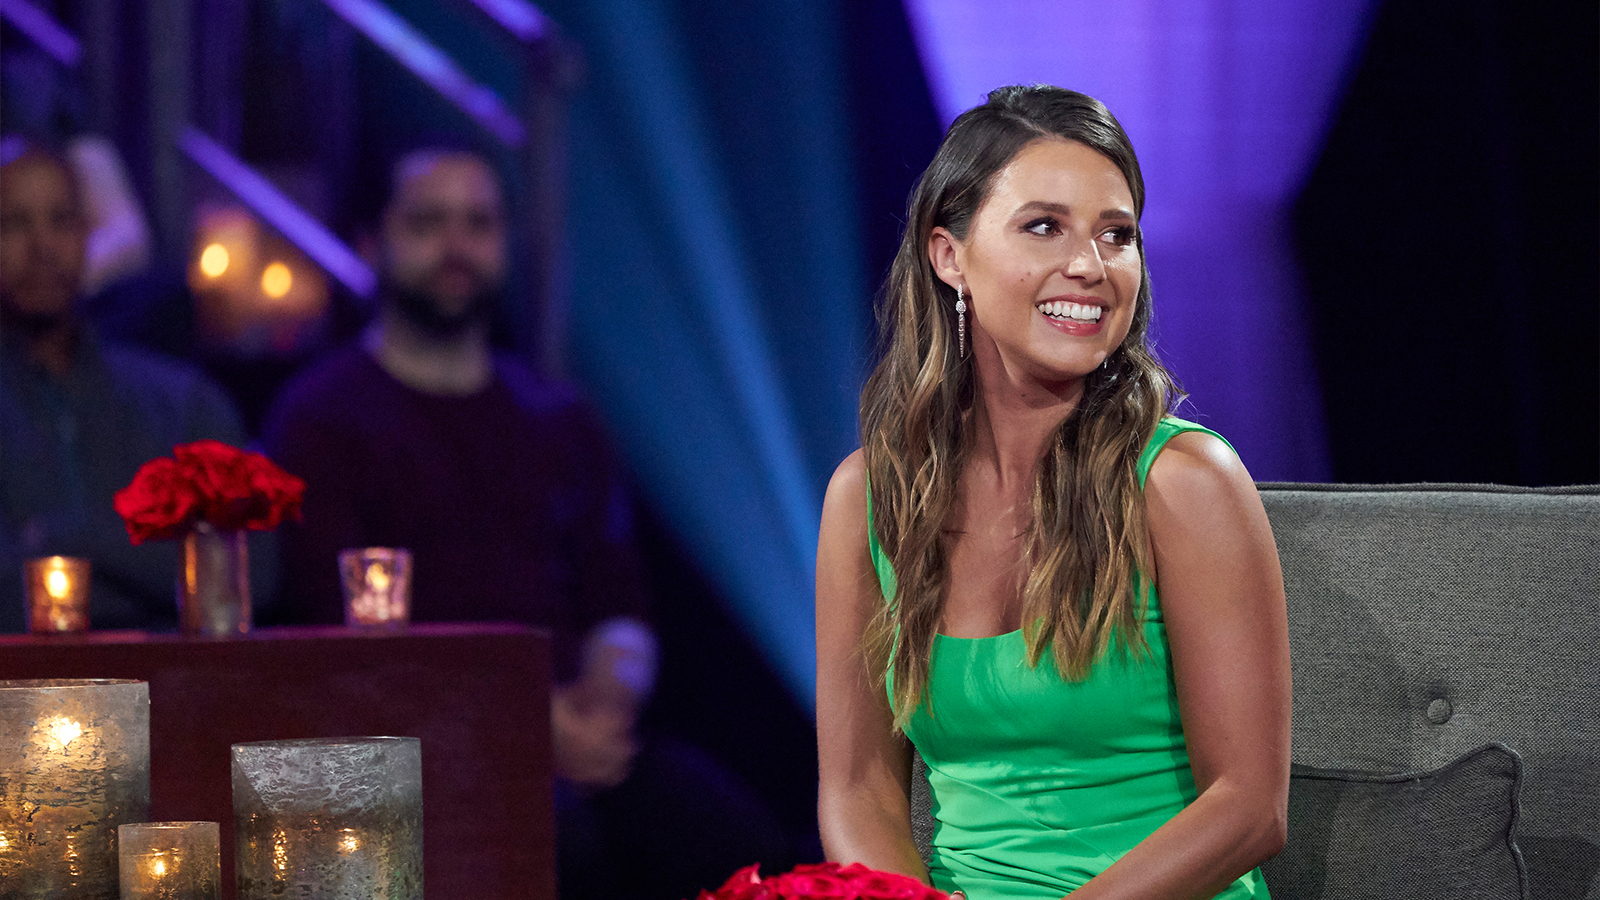 The Bachelorette 2021: Katie Thurston reunites with former suitors in 'Men Tell All'